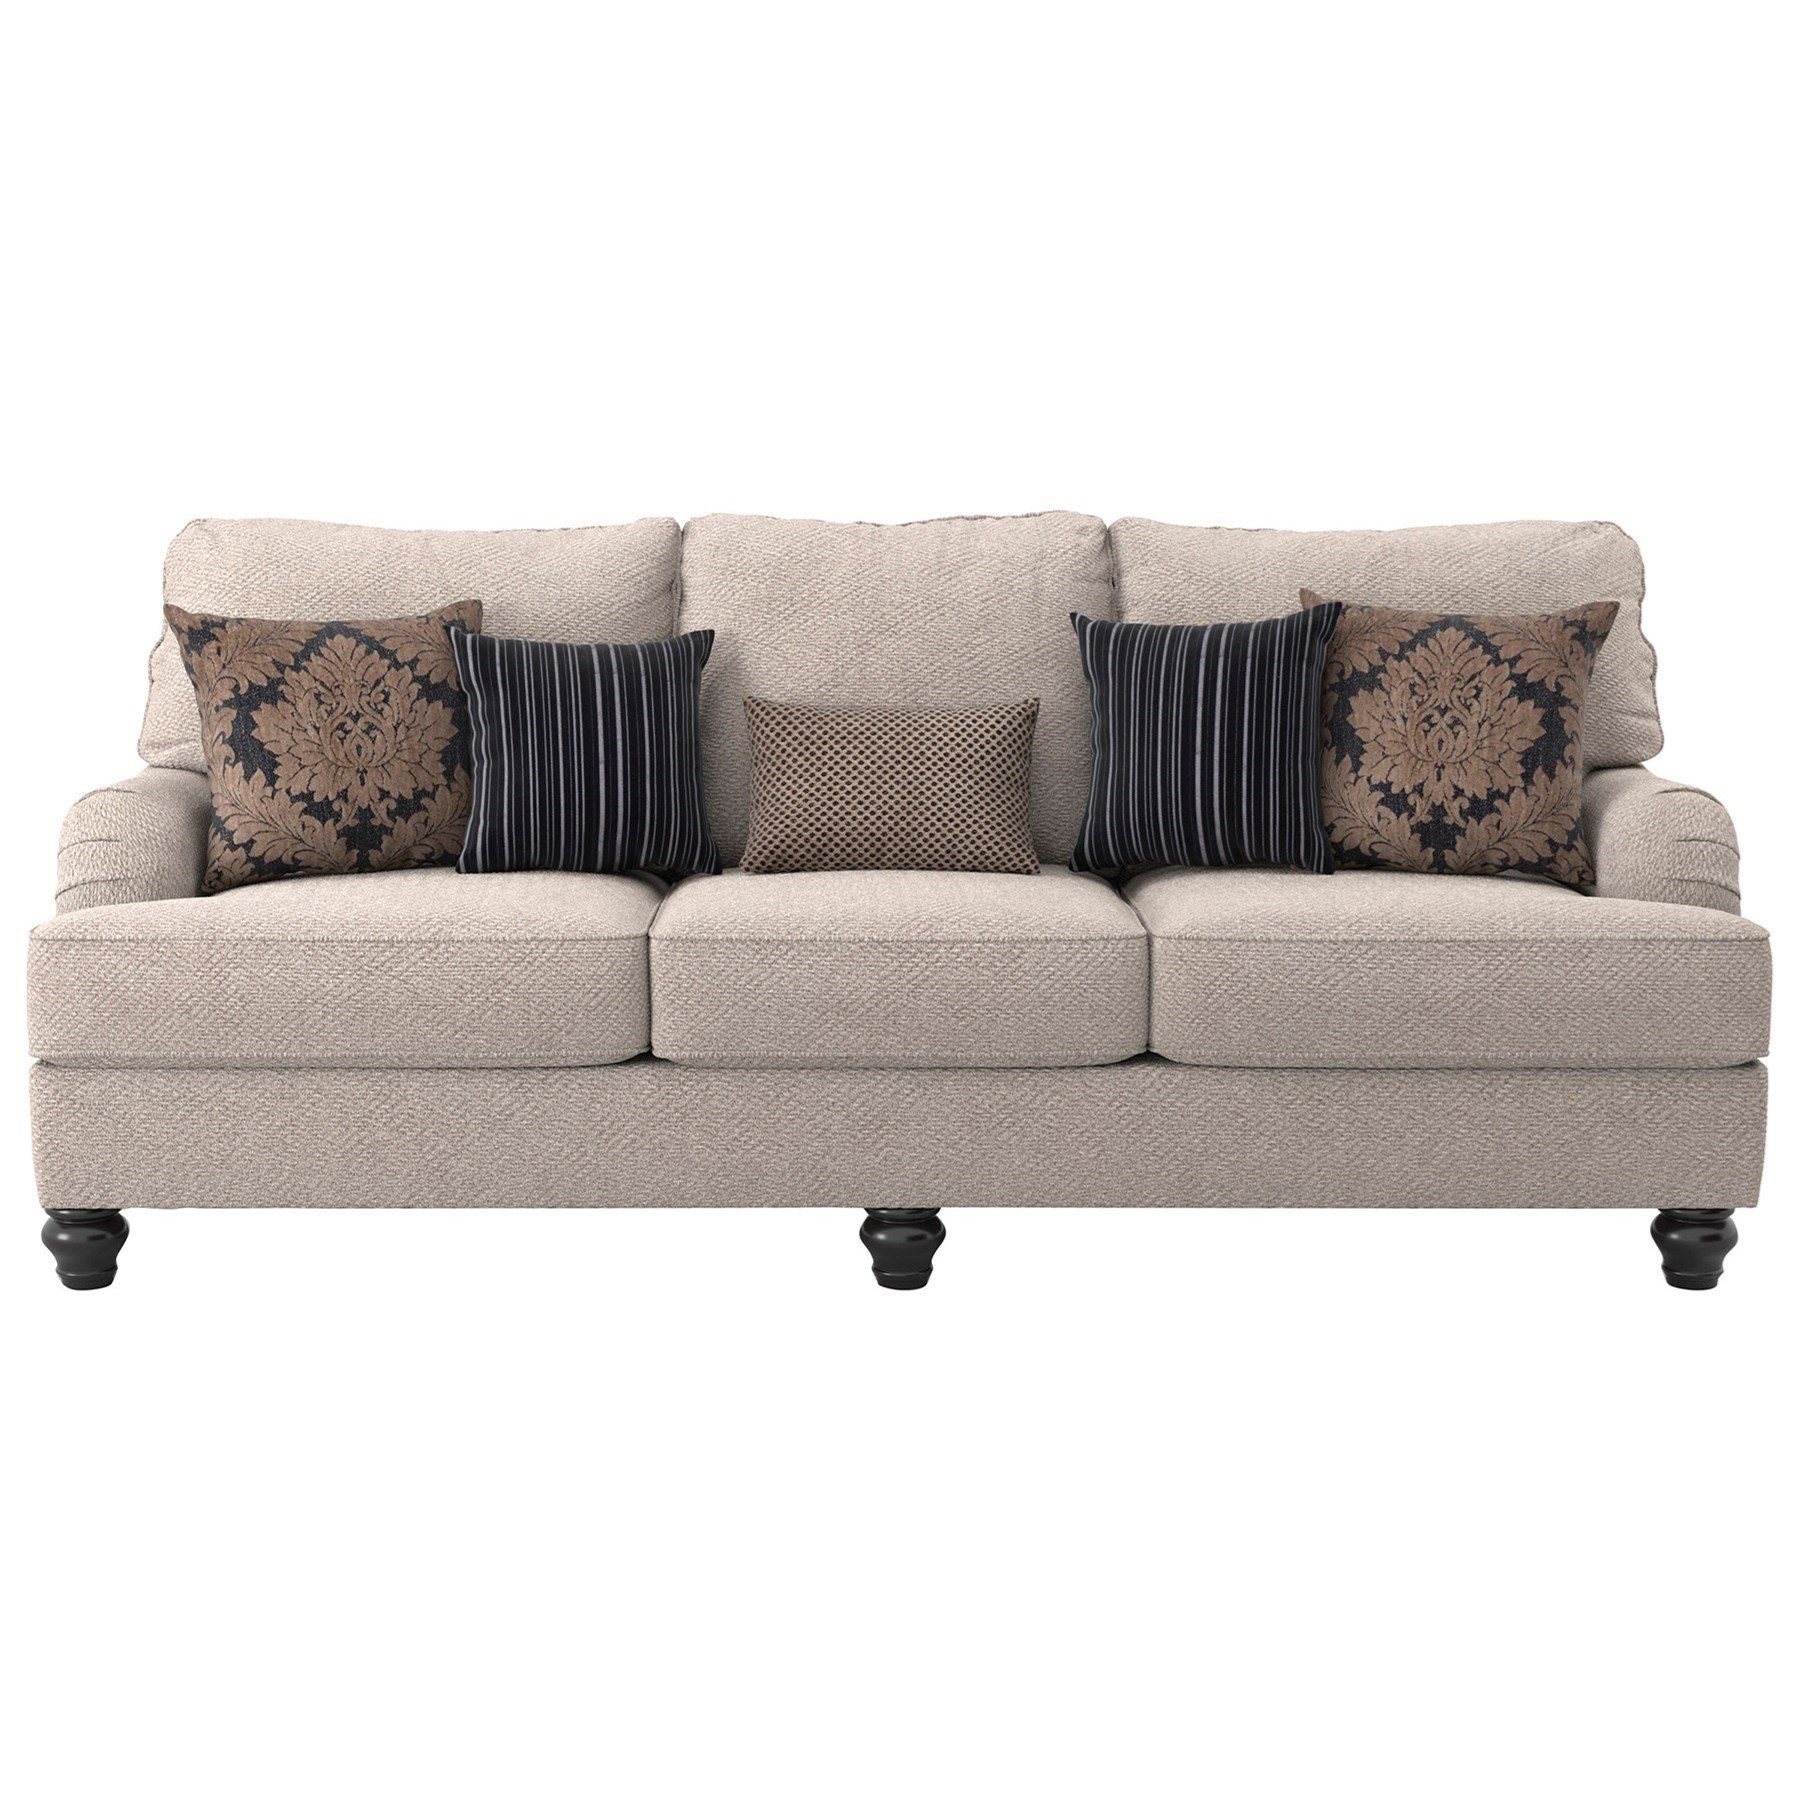 ... Ashley Furniture Fermoy Queen Sofa Sleeper. Sofa Shown May Not  Represent Exact Features Indicated